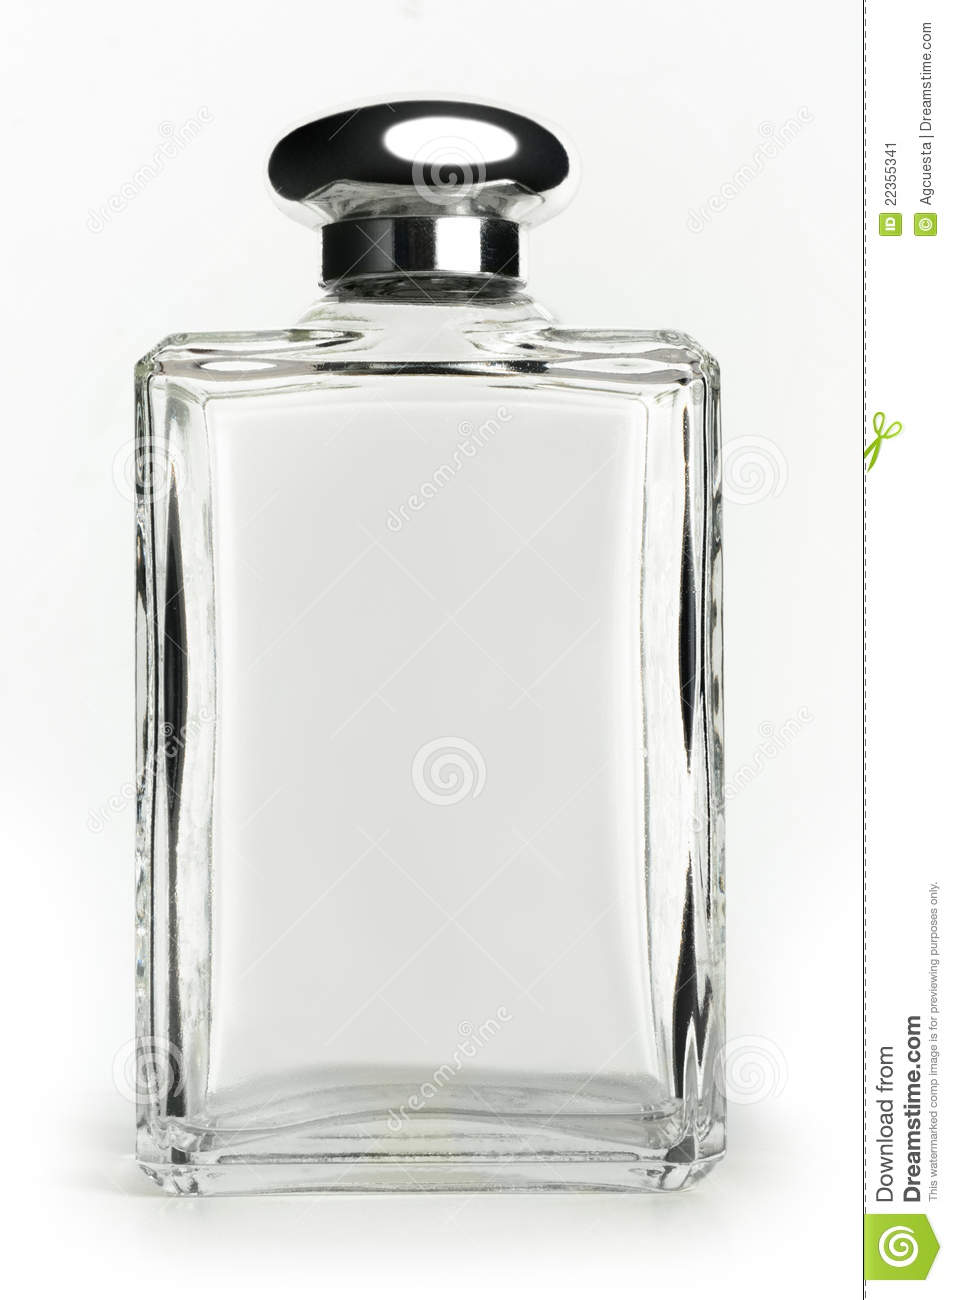 Empty perfume bottle isolated on white front view.